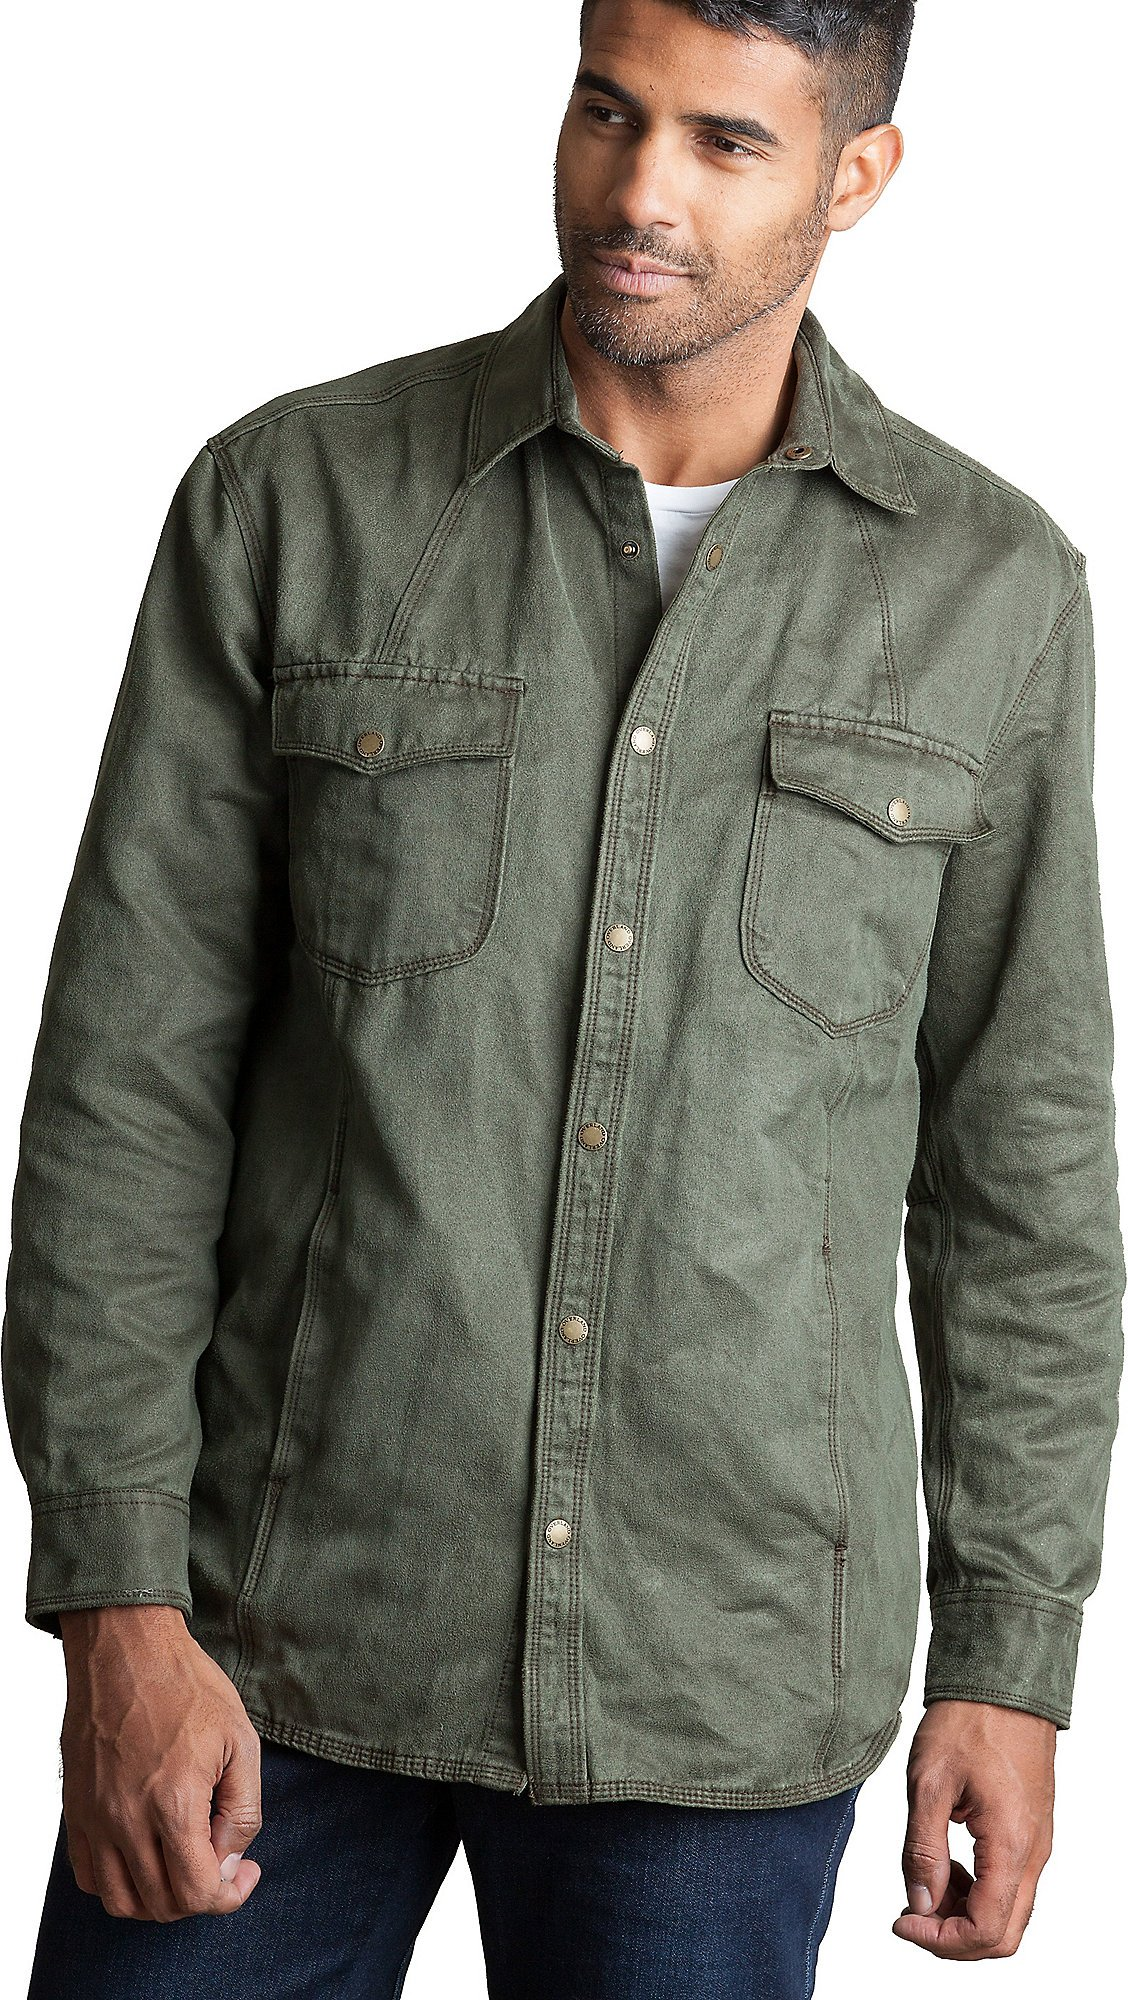 Ames Brushed Cotton-Blend Shirt, Olive, Size Small (34-36)